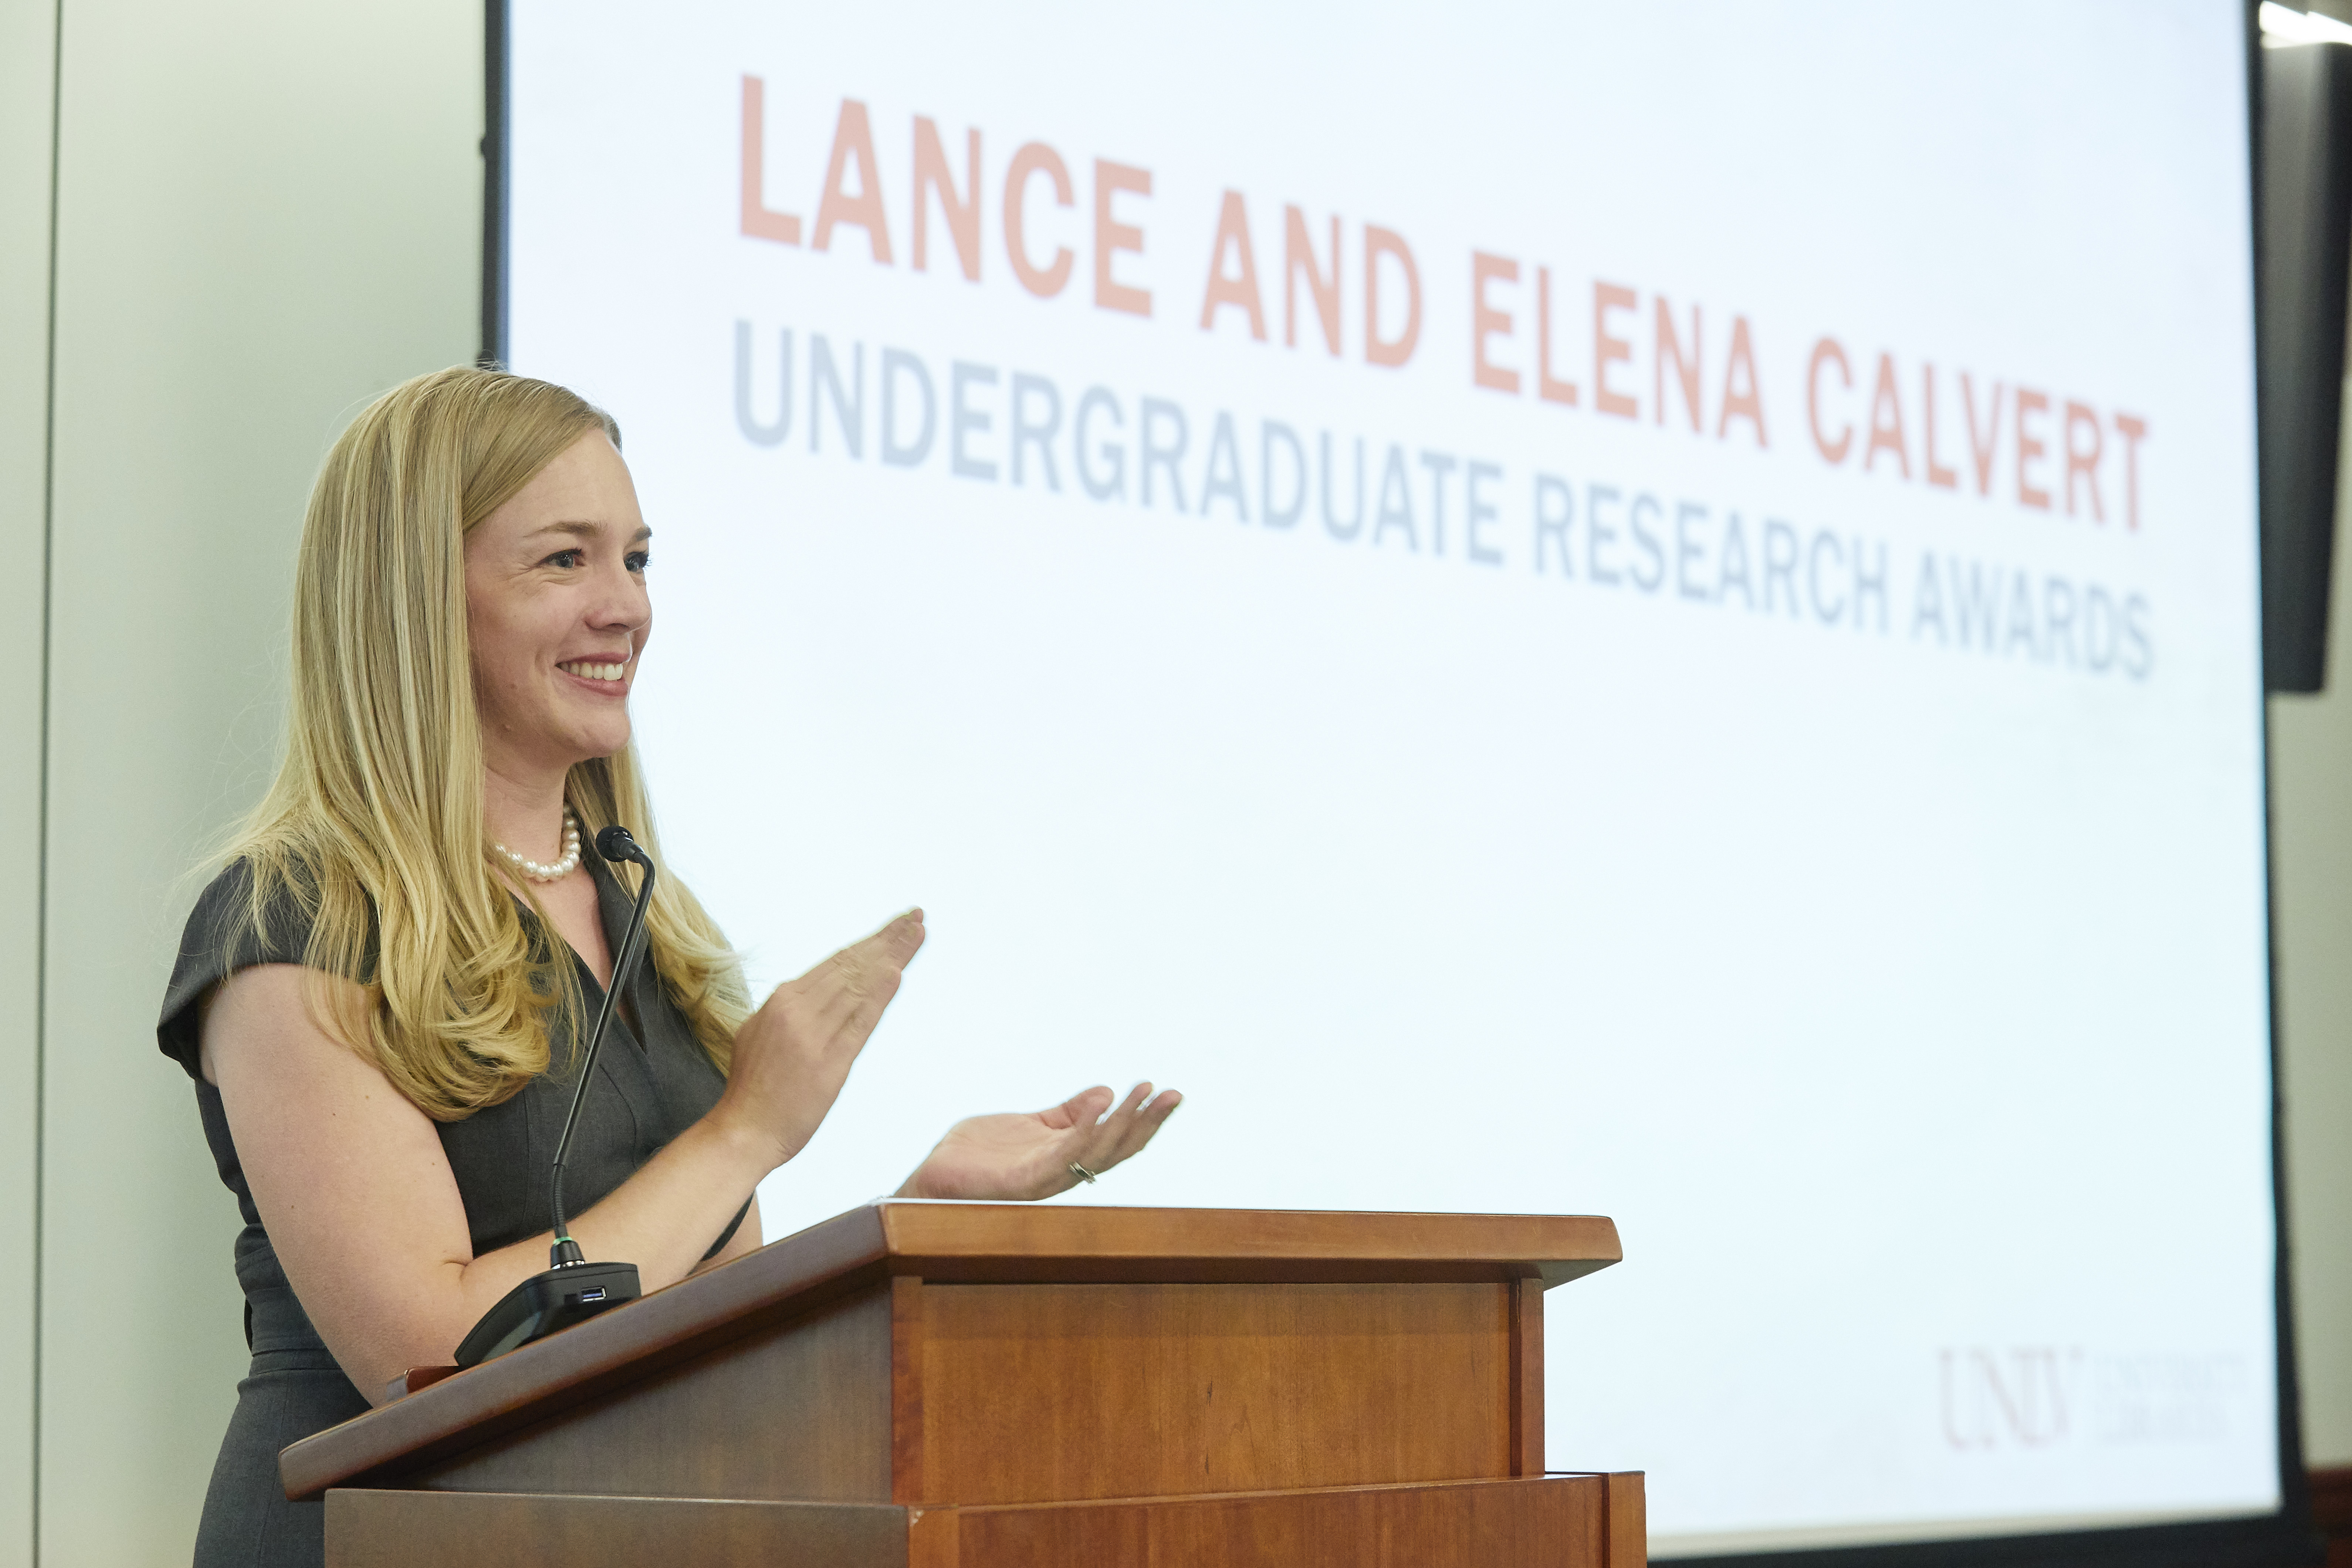 Lance and Elena Calvert Undergraduate Research Awards Ceremony